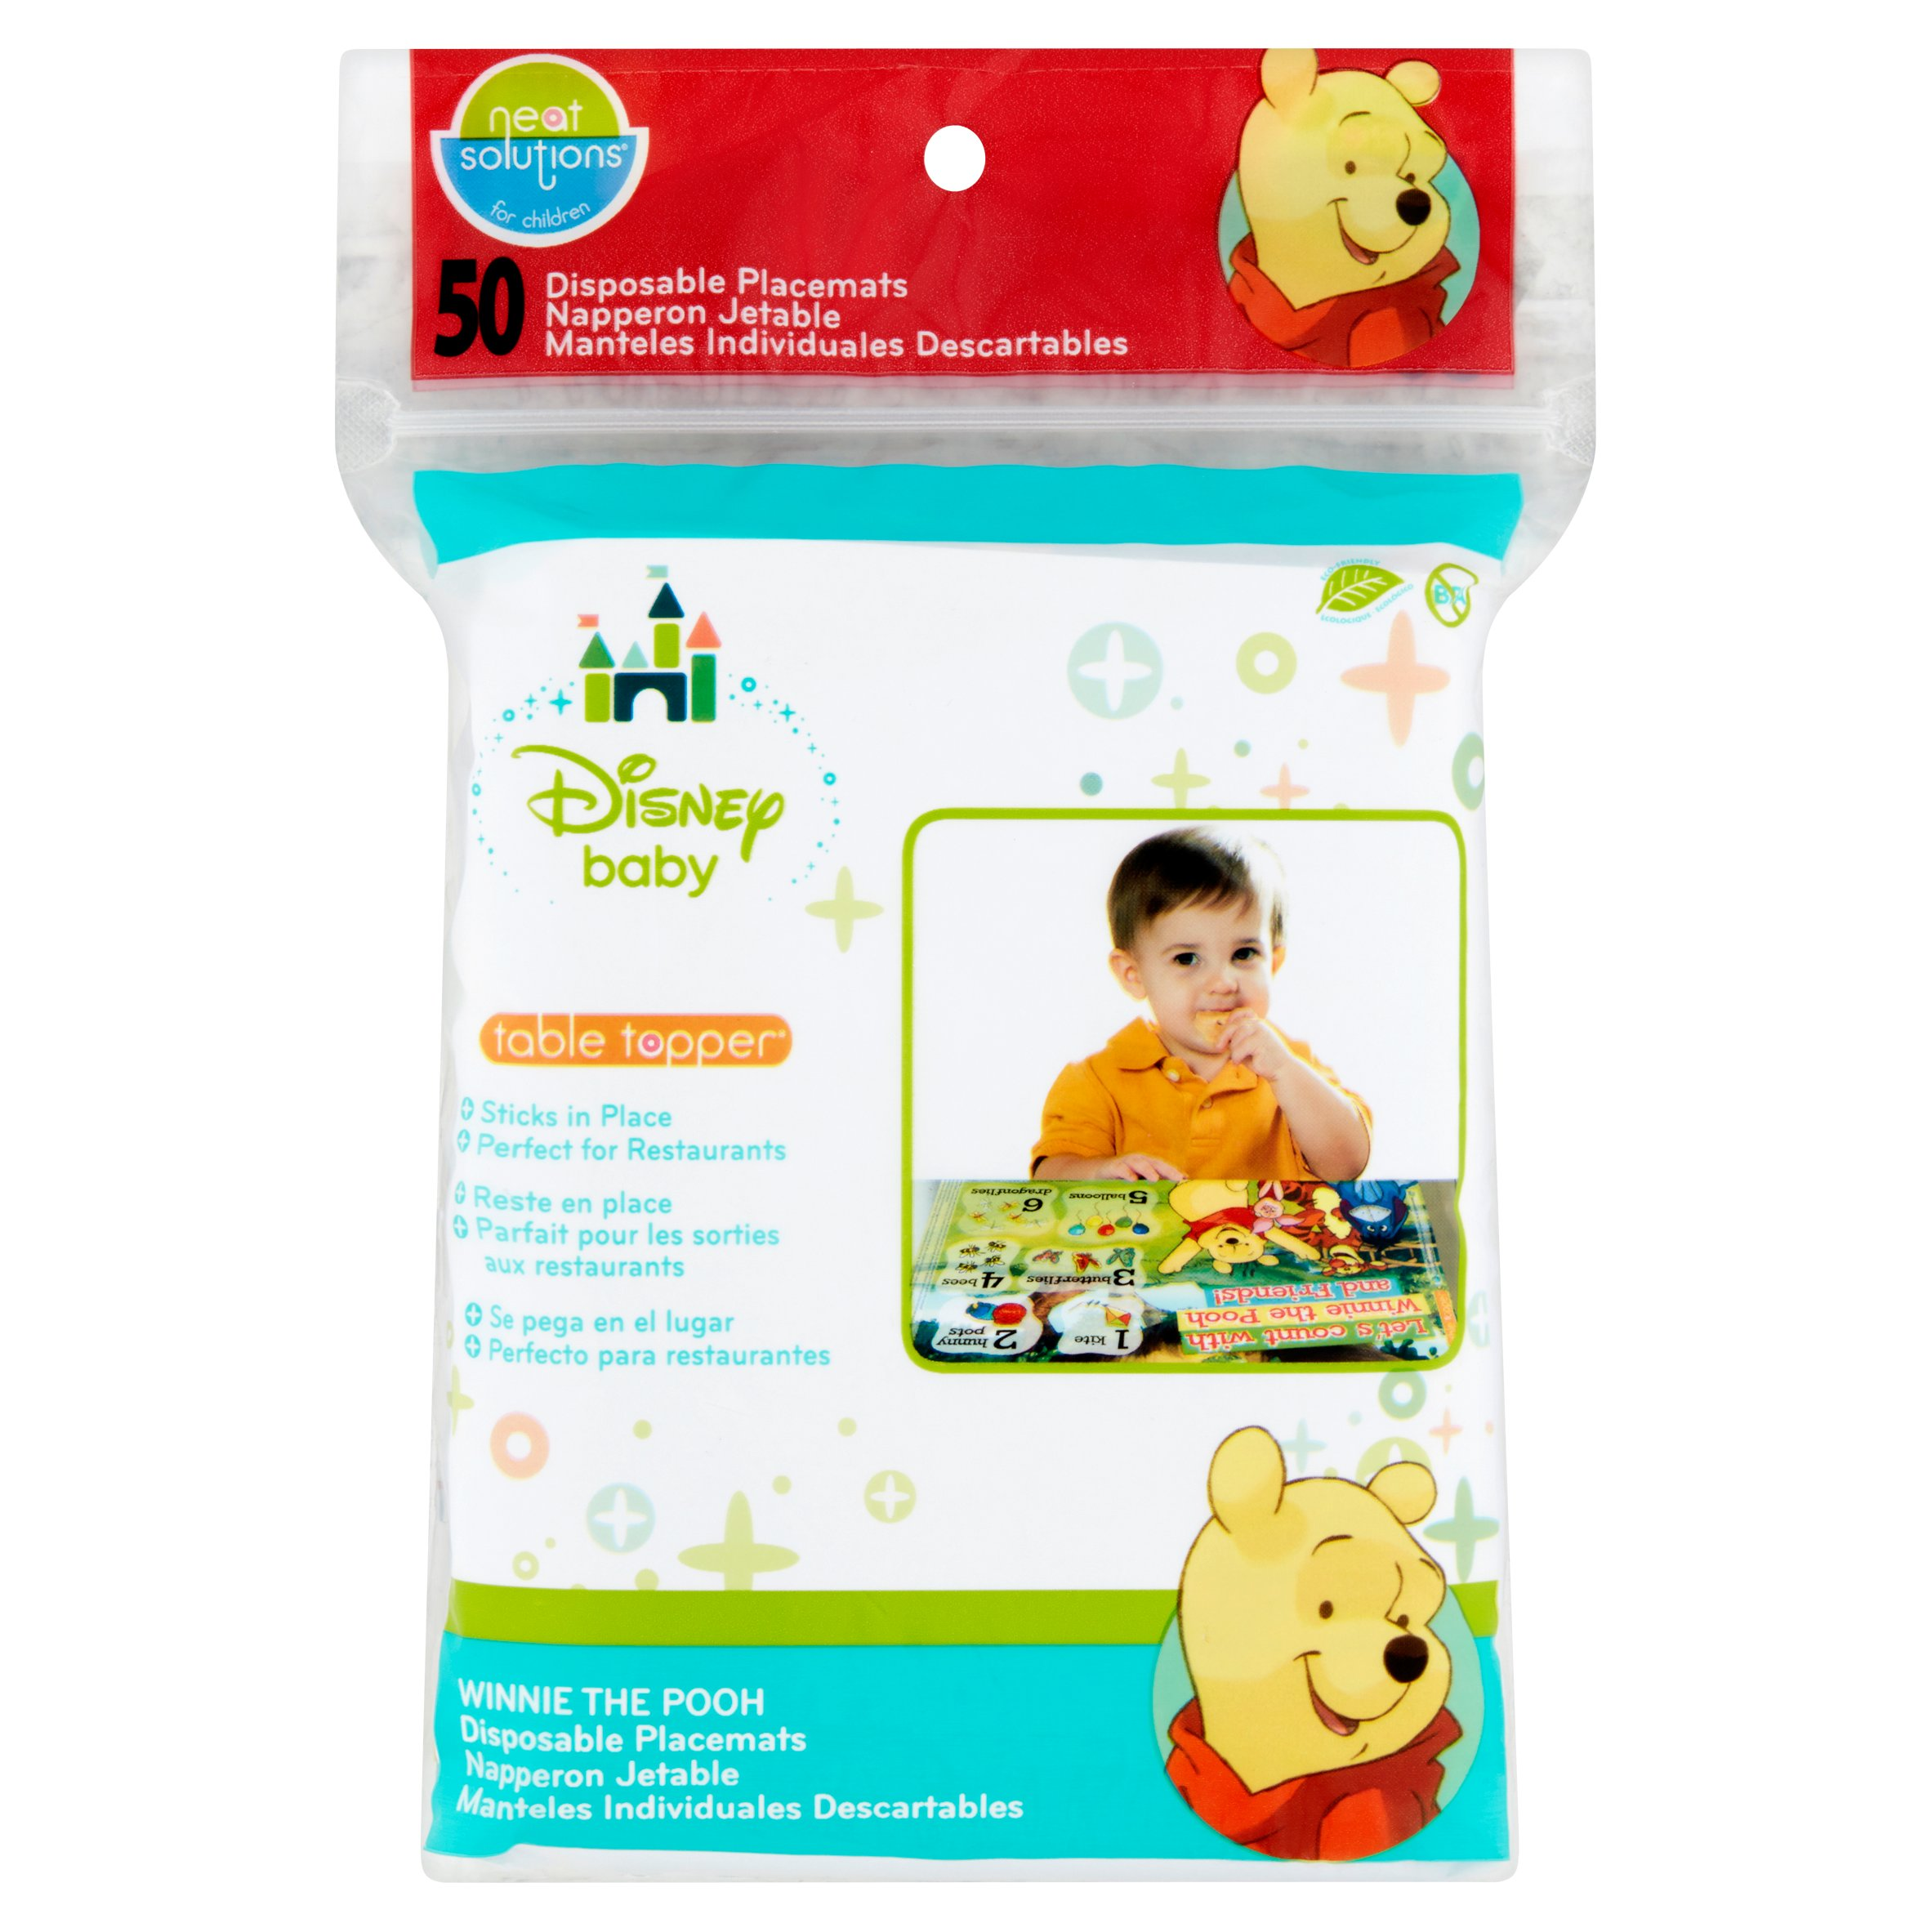 Neat Solutions for Children Disney Baby Table Topper Disposable Placemats, 50 count